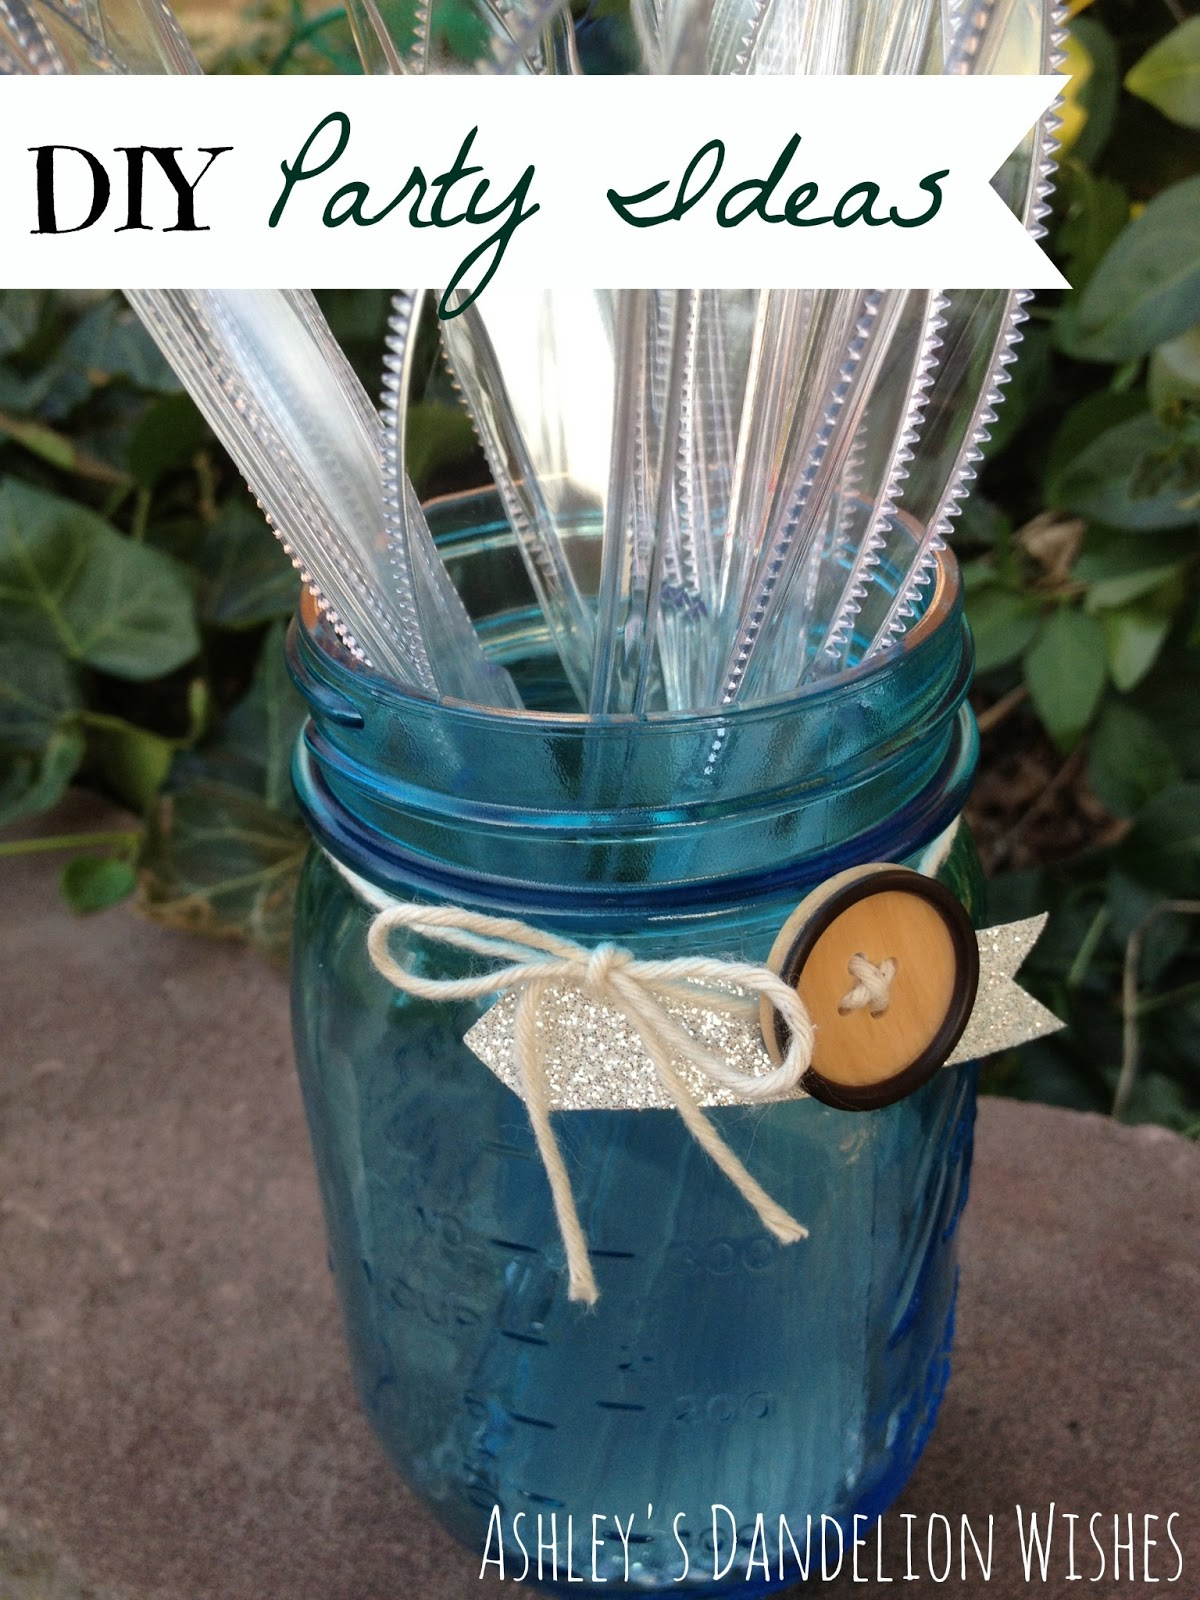 Homemade Decorations 50th Birthday Party Image Inspiration of